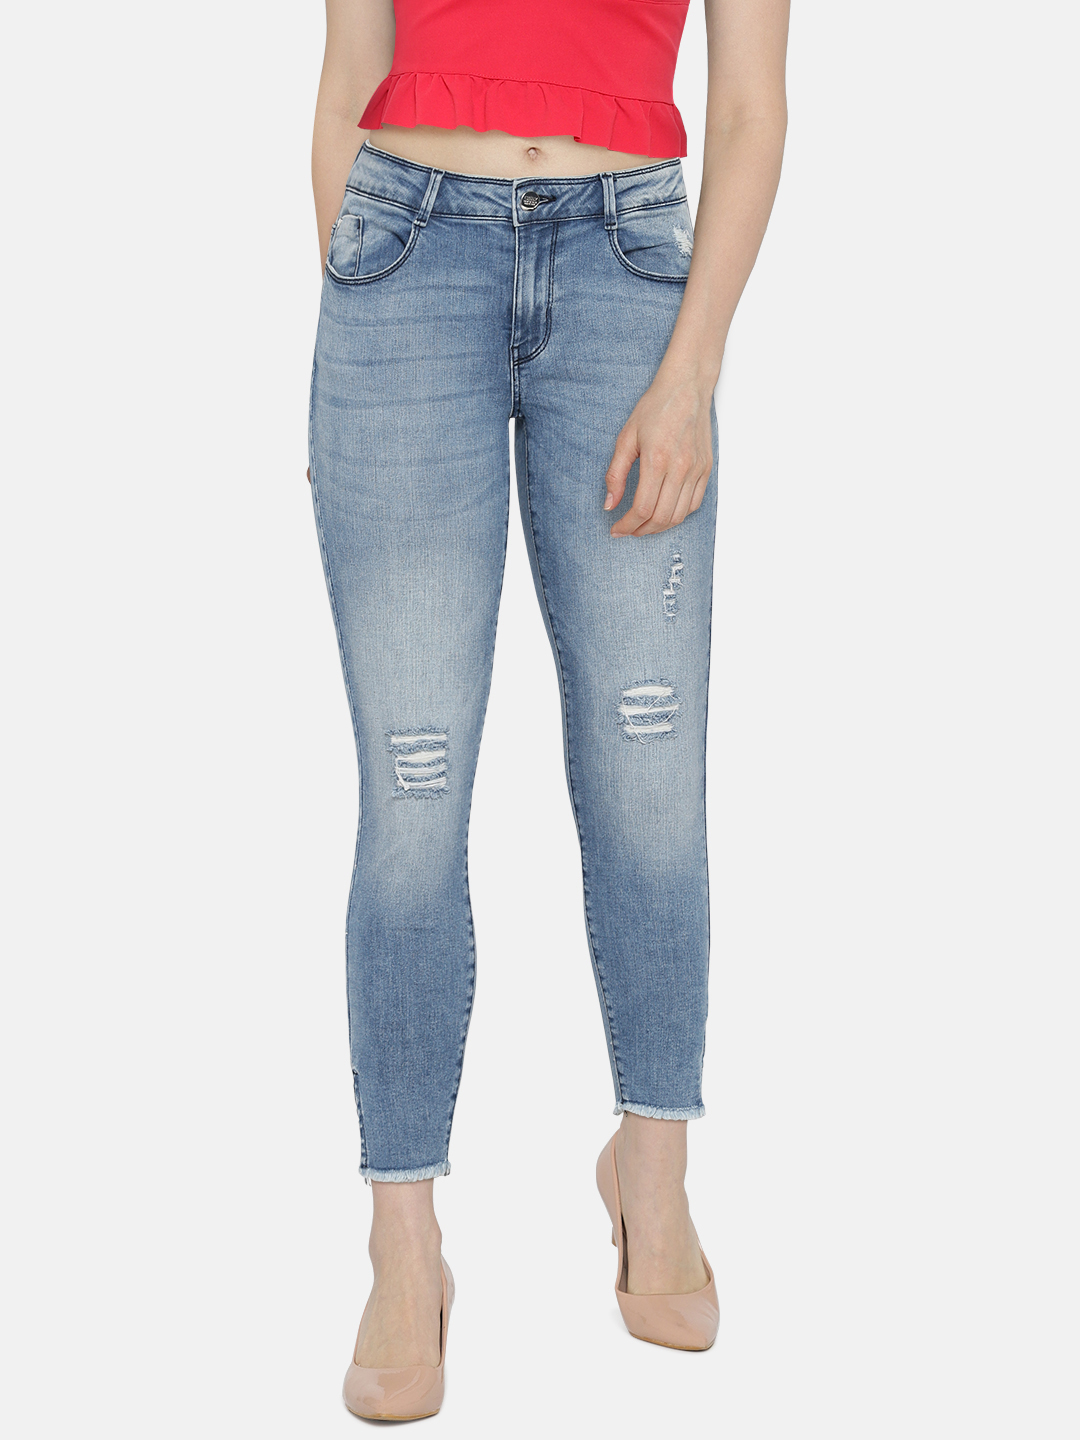 ONLY Women Blue Skinny Fit Mid-Rise Mildly Distressed Stretchable Jeans Price in India